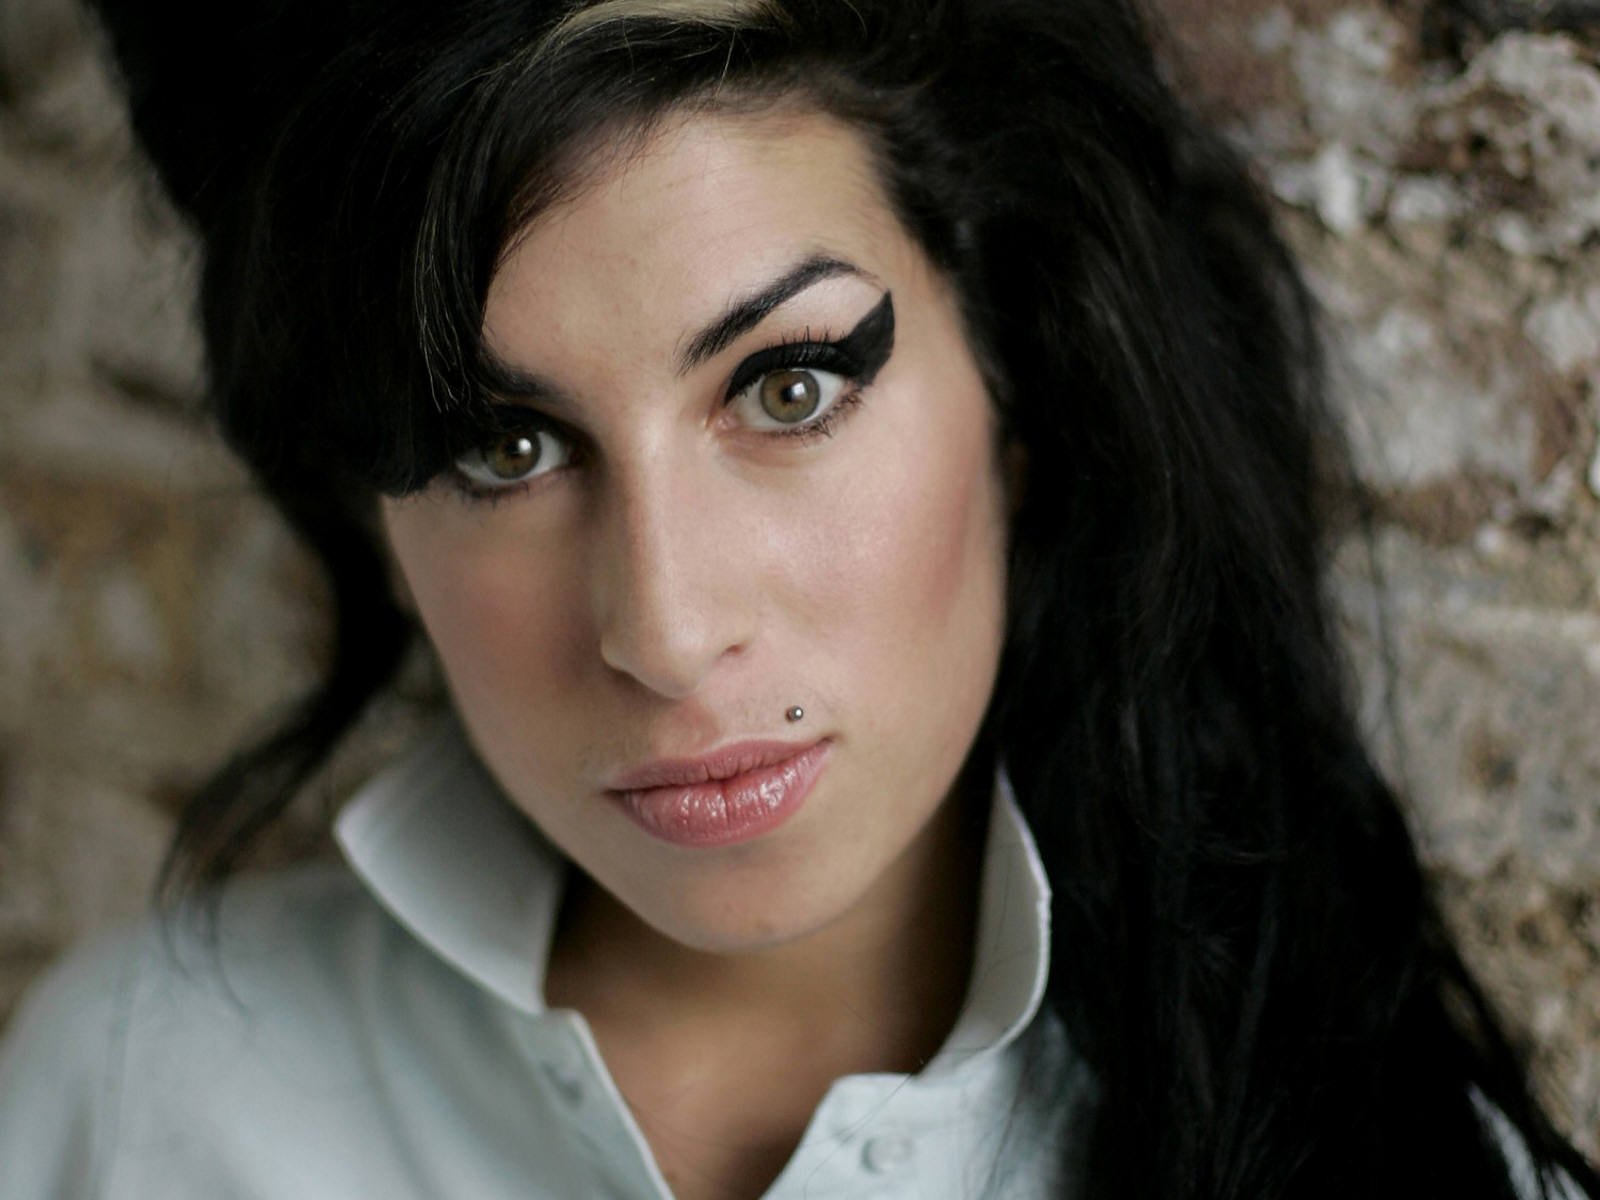 Hear Amy Winehouse talk about her duet with Tony Bennett